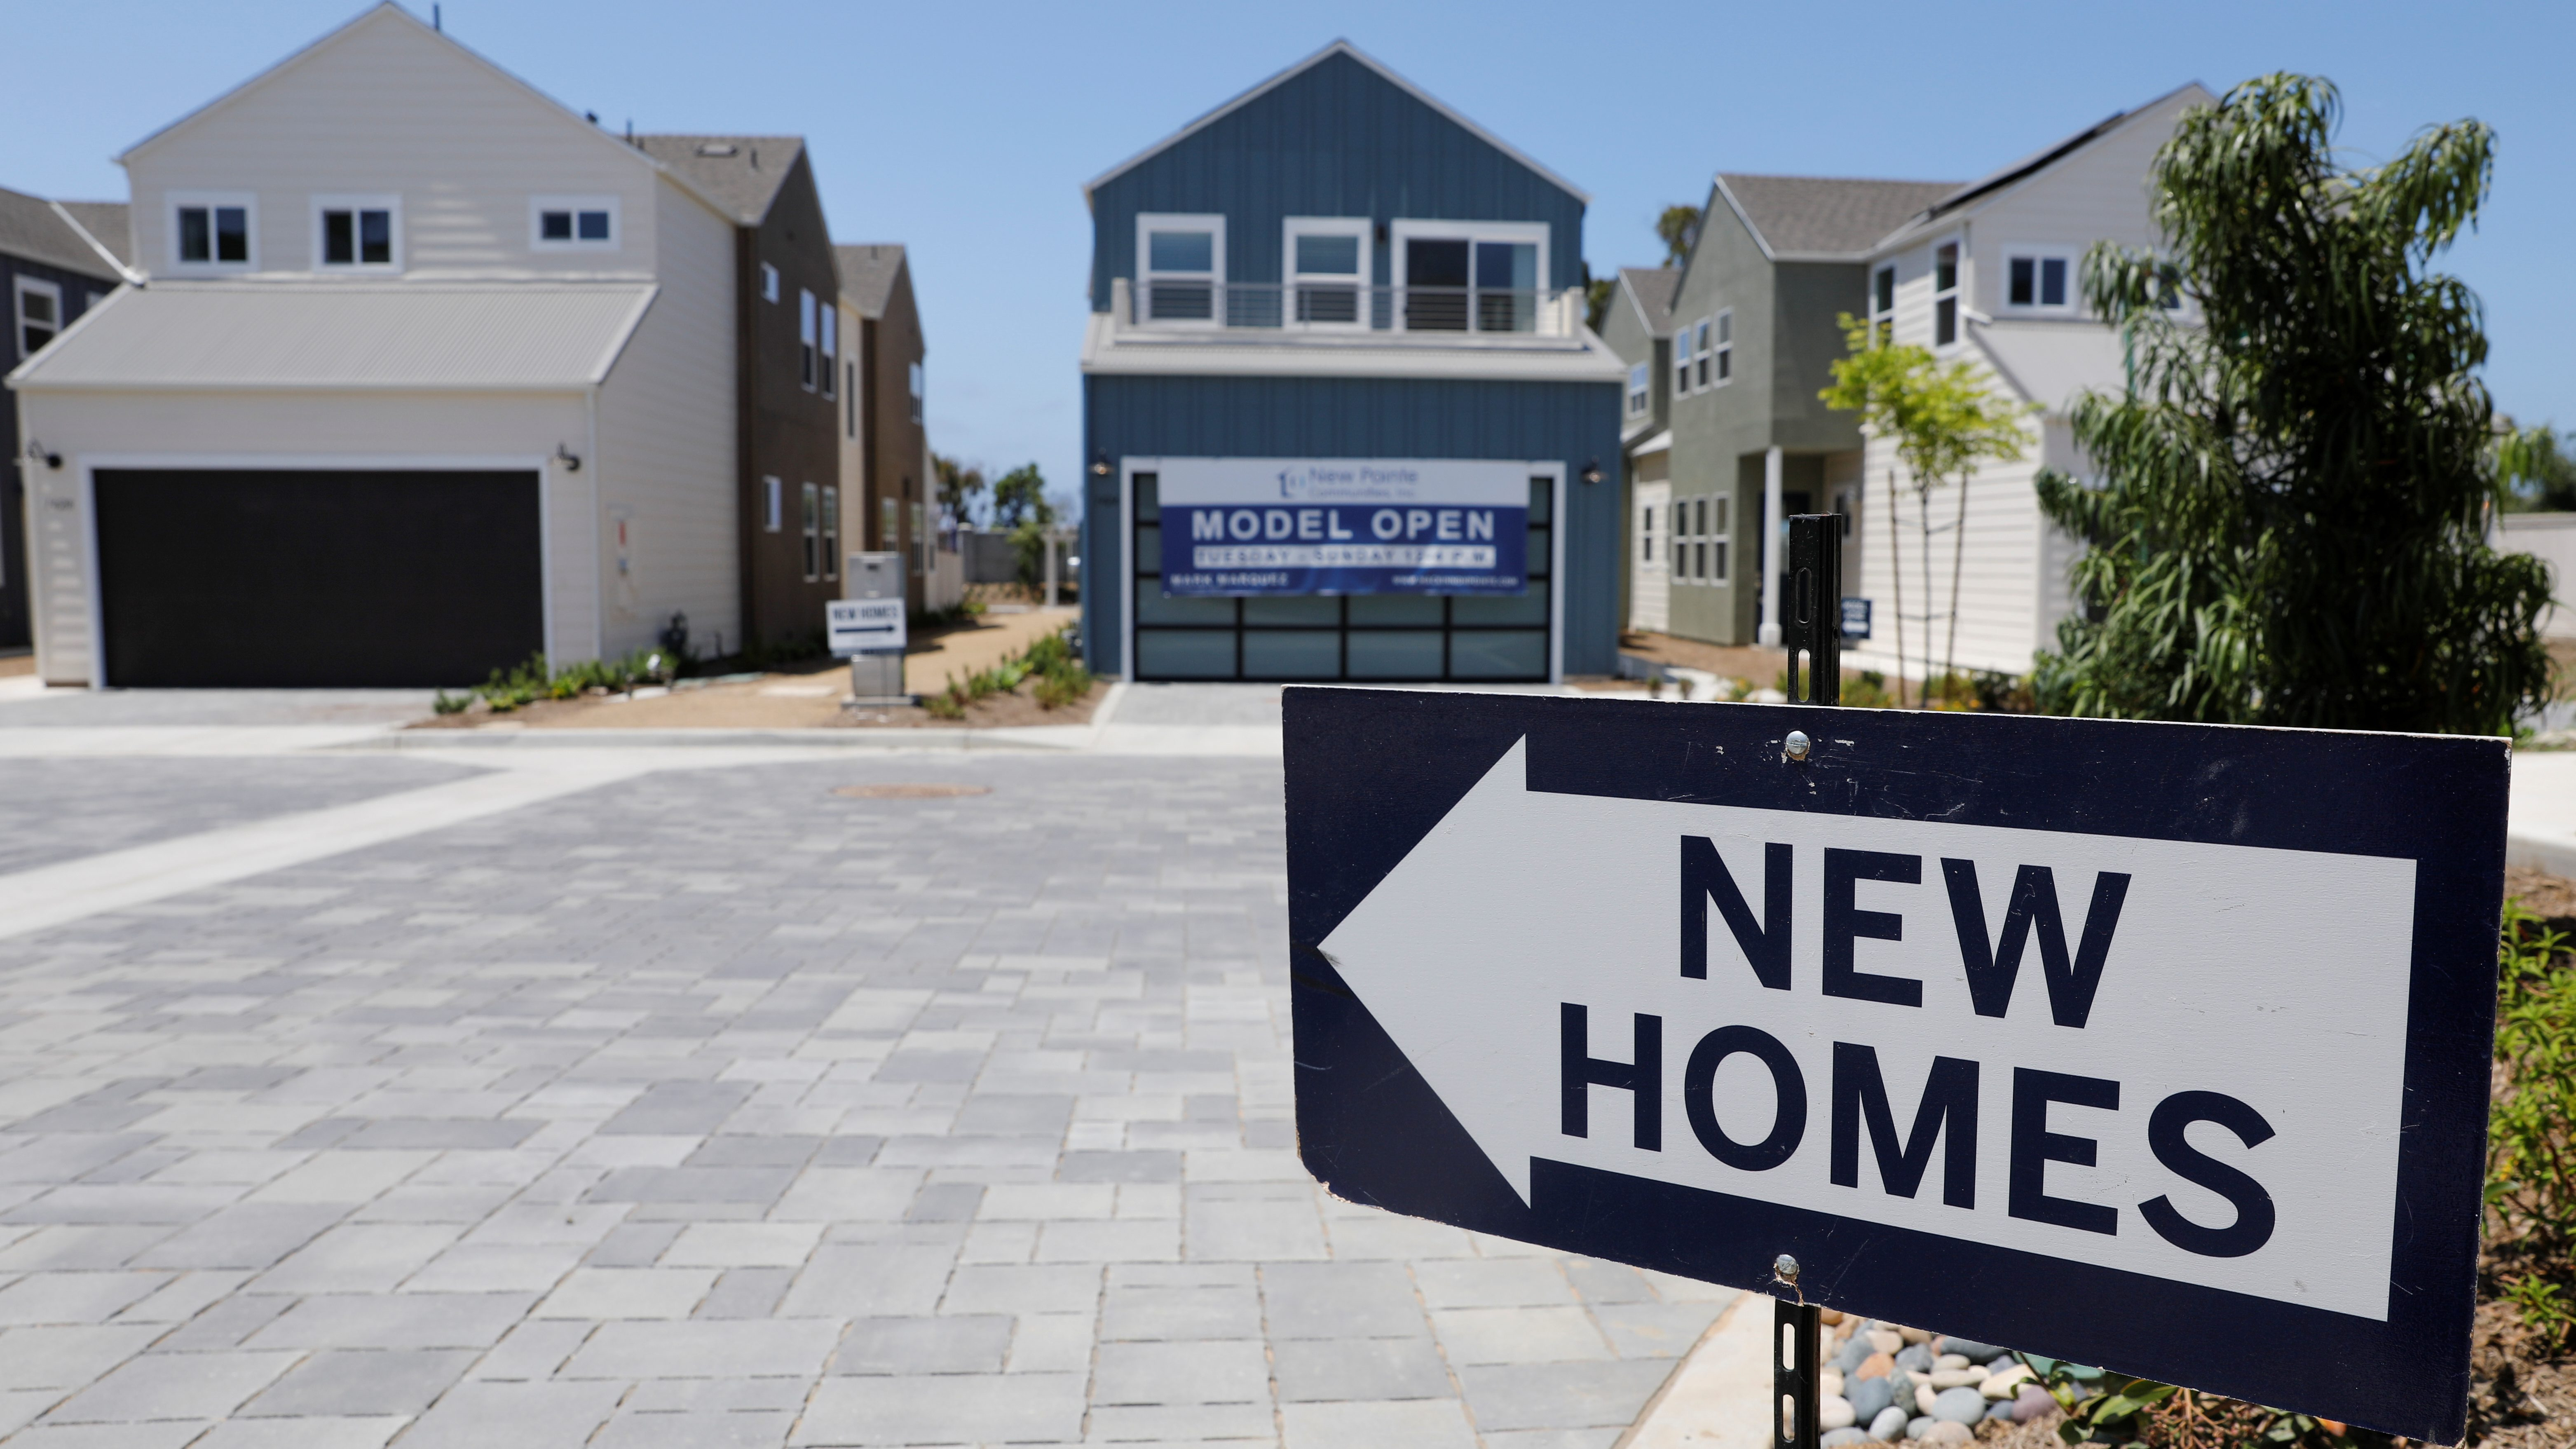 Newly constructed single family homes are shown for sale.